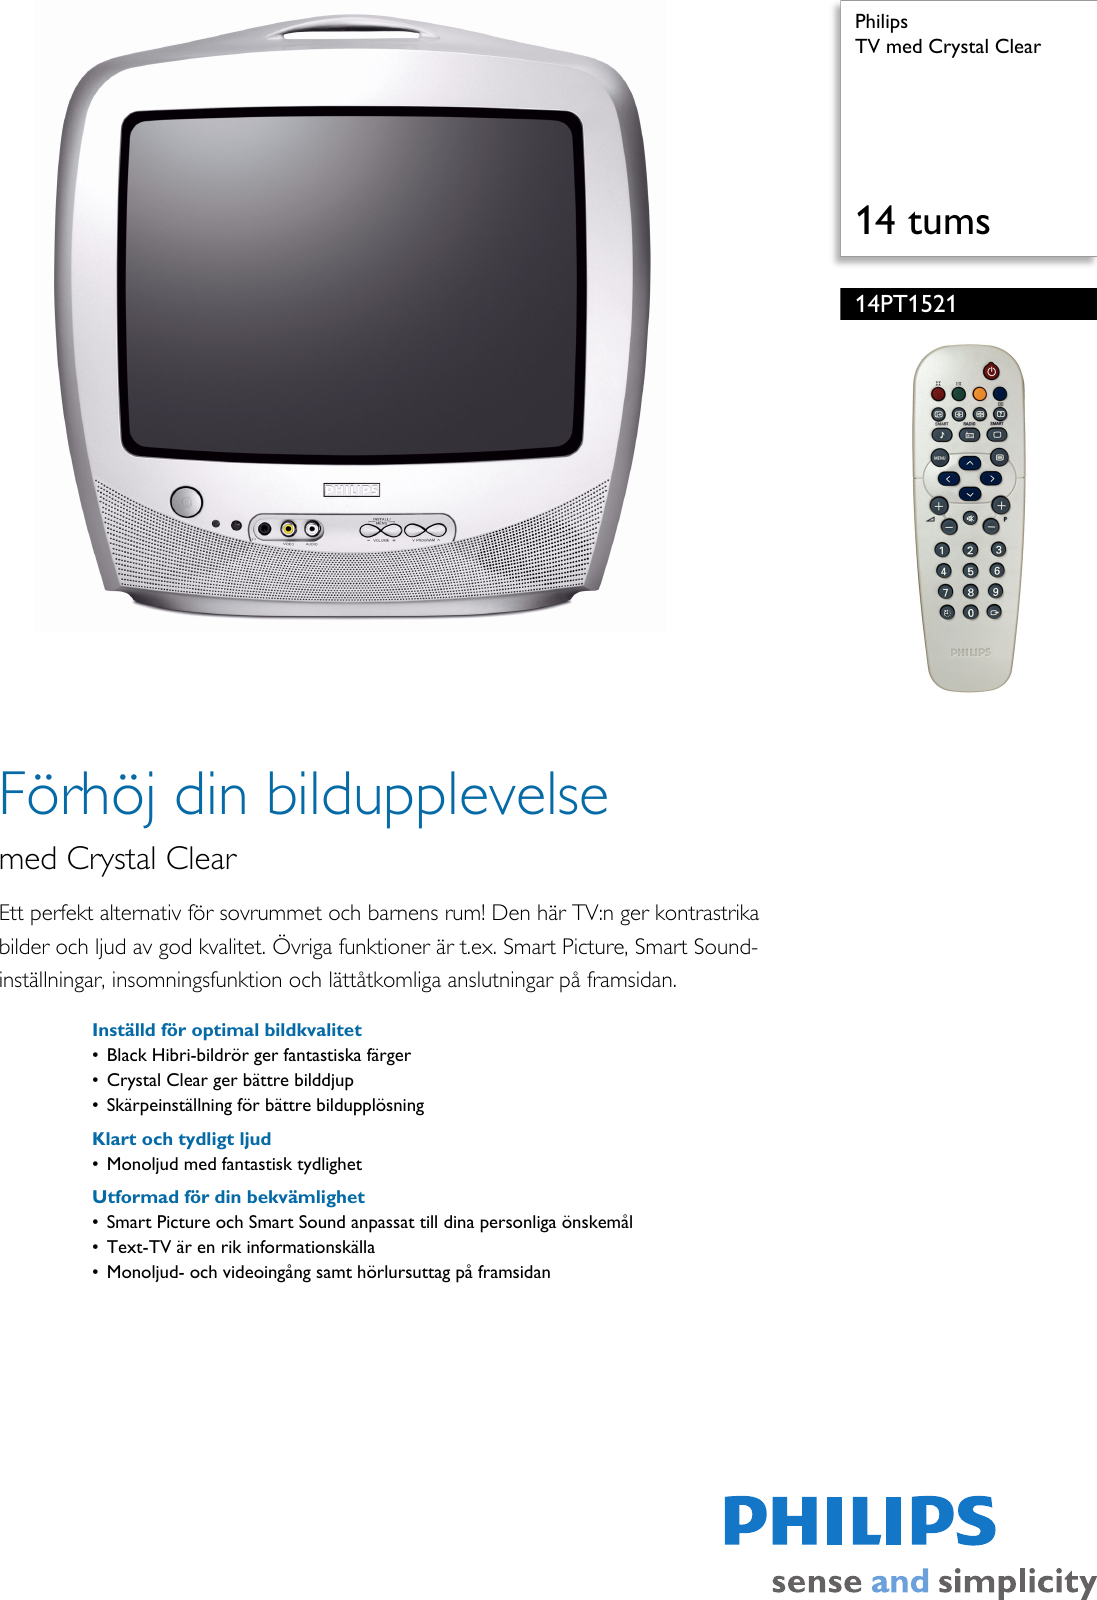 philips 14pt1521 12 tv med crystal clear 14pt1521 12 pss swese rh usermanual wiki Old Philips TV Model Numbers Philips Televisions Owner's Manual